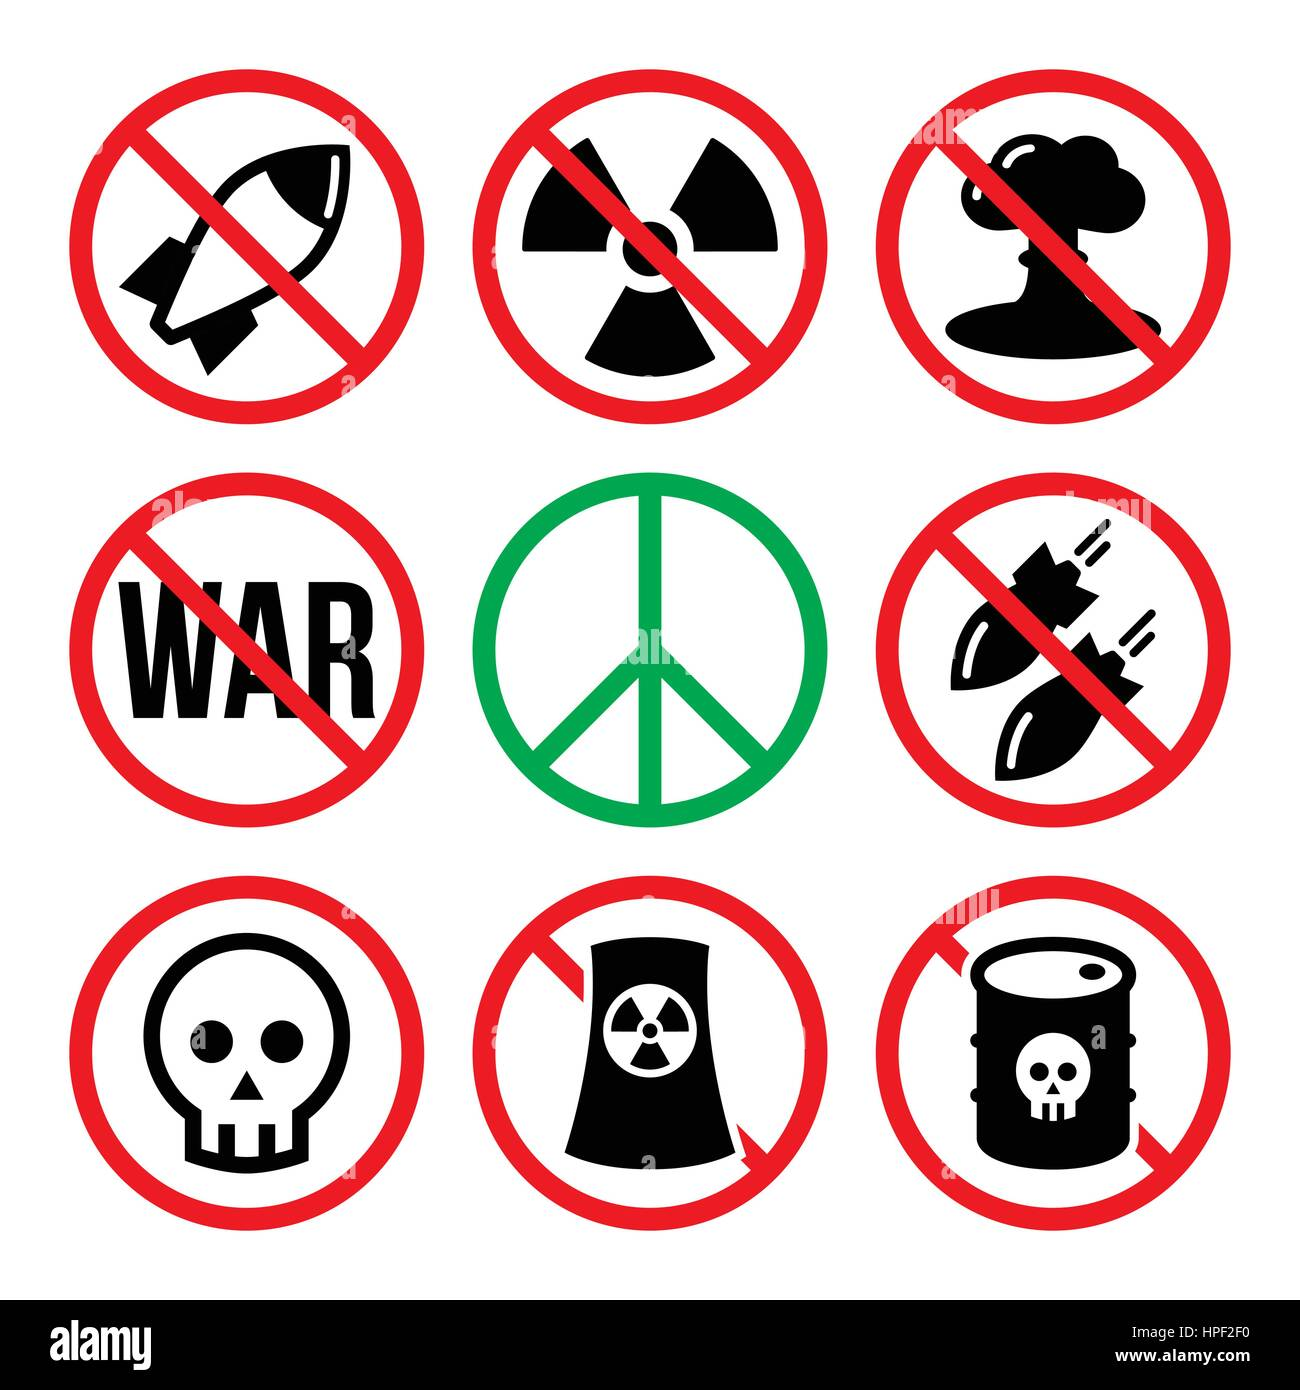 No nuclear weapon, no war, no bombs warning signs - Stock Image